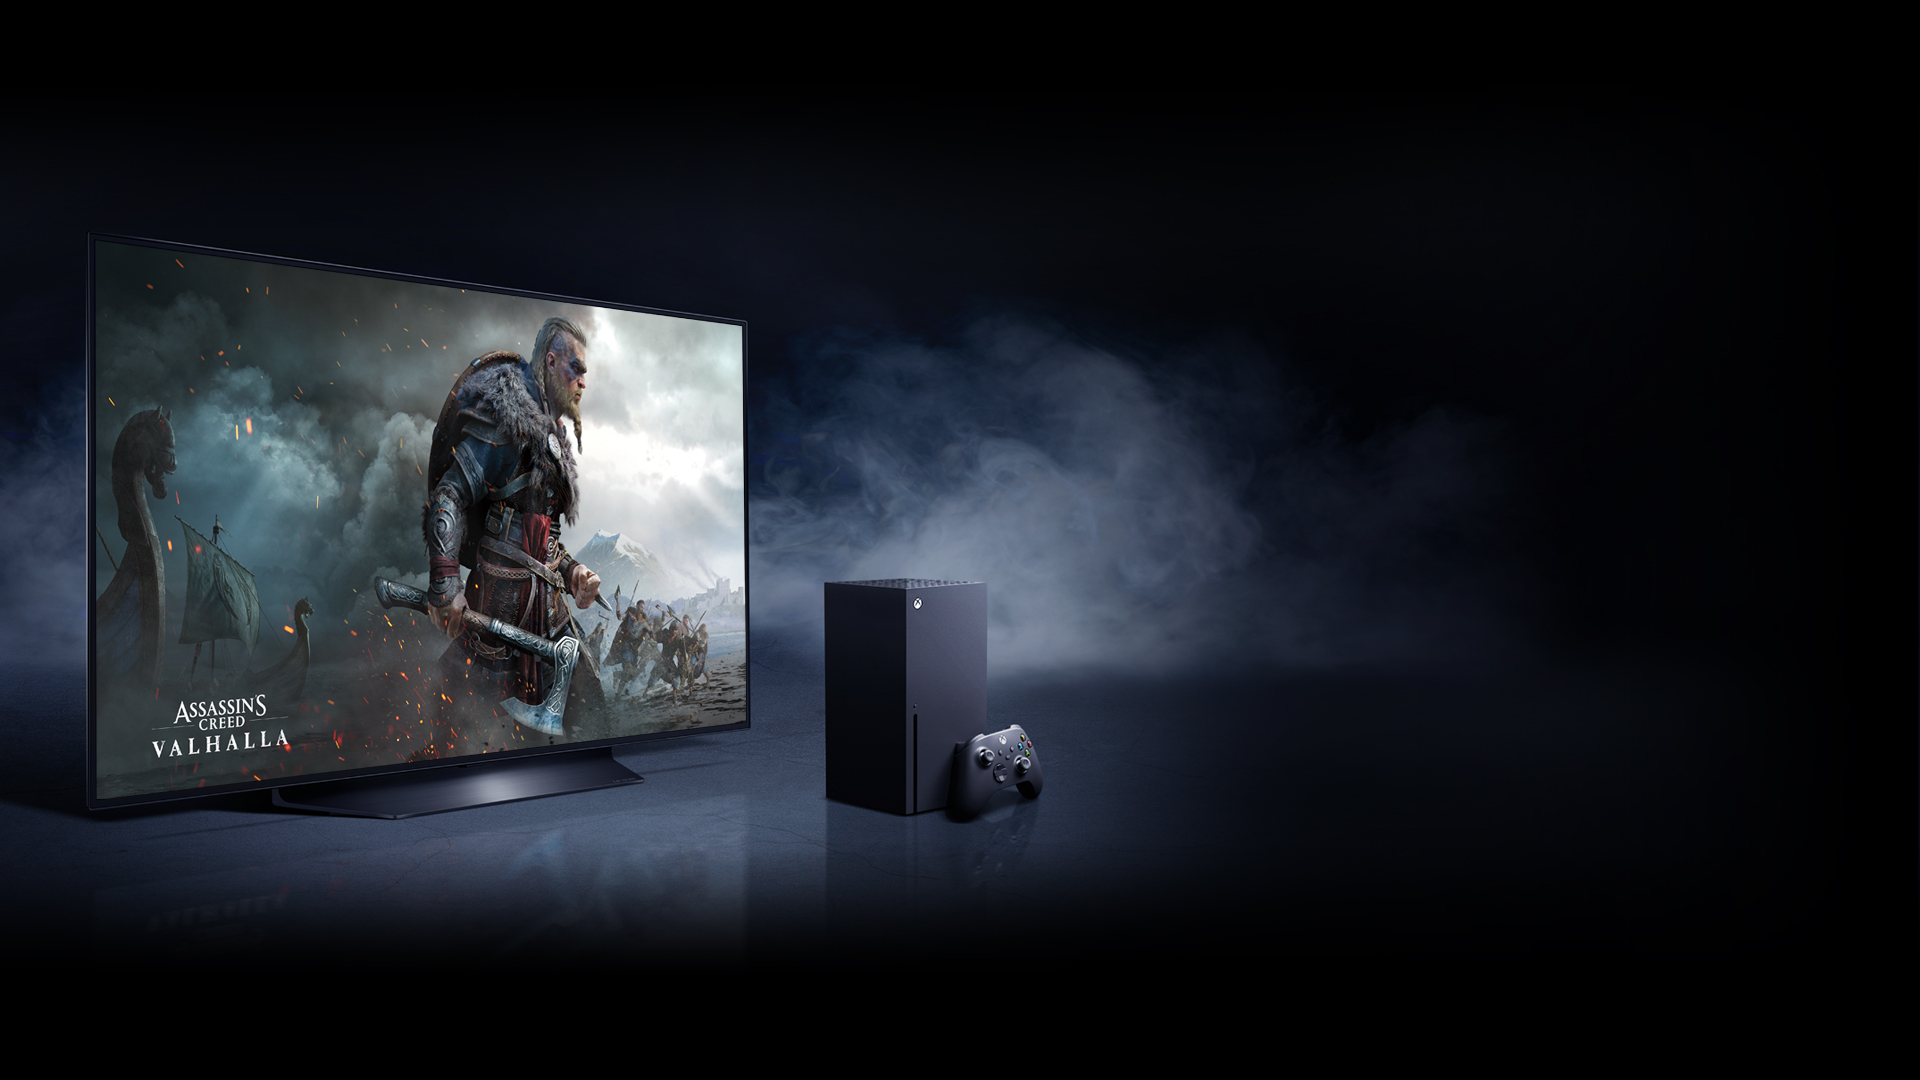 An Xbox Series X alongside an LG OLED TV with a visual from Assassin's Creed Valhalla that features its protaganist, Eivor, and other vikings